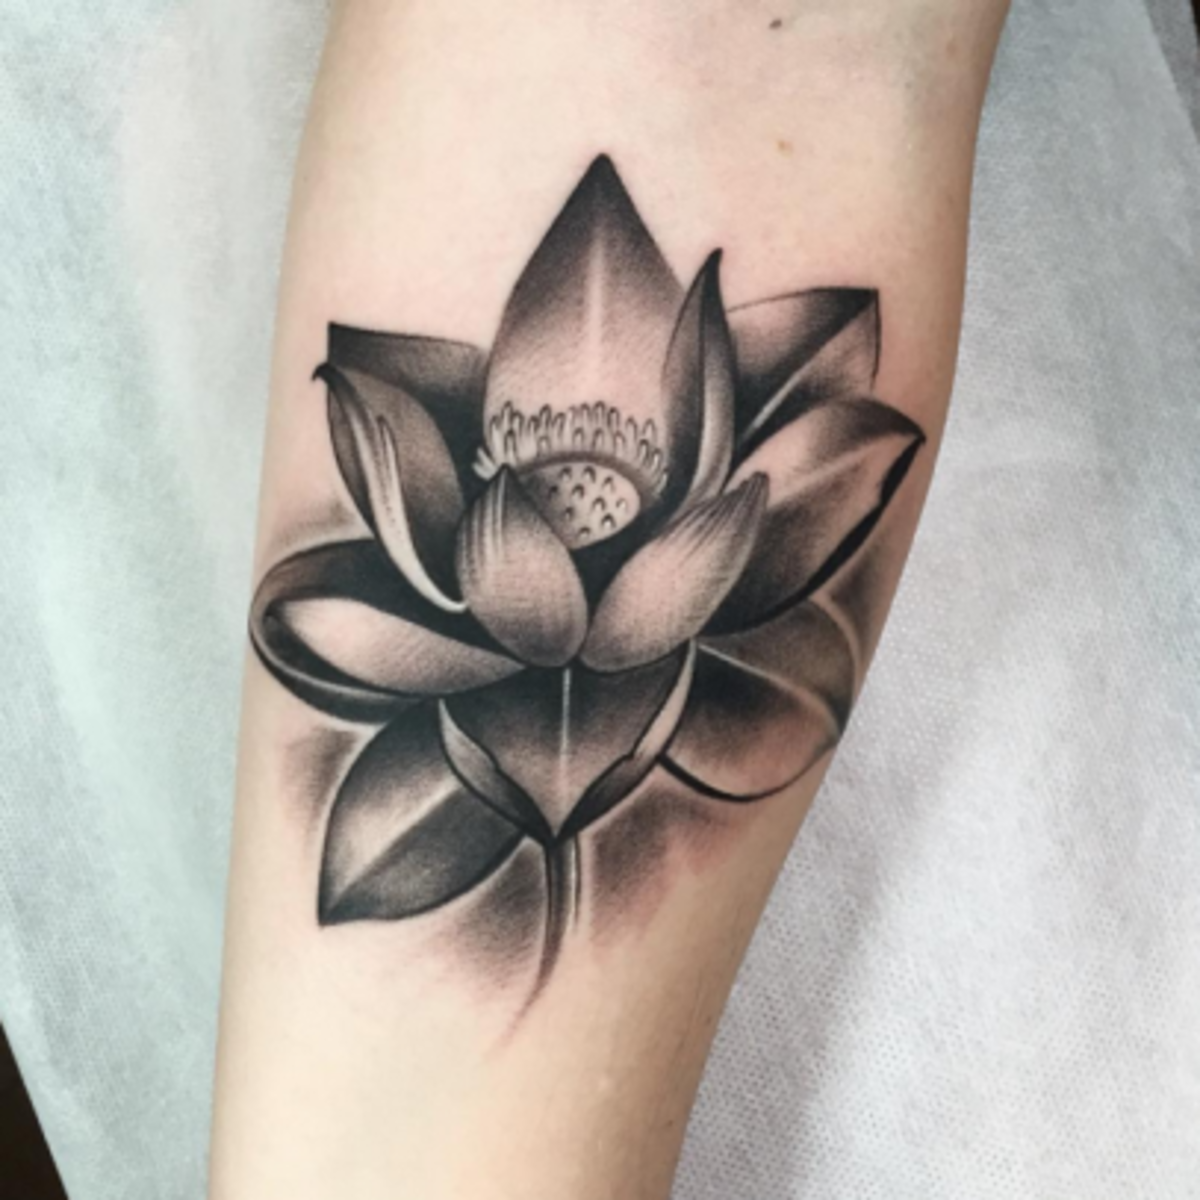 Gifting A Bouquet Of Flowers Is Always A Sweet Gesture But Most Of The Time We Don T K Flower Tattoo Meanings Lotus Flower Tattoo Design Lotus Tattoo Shoulder